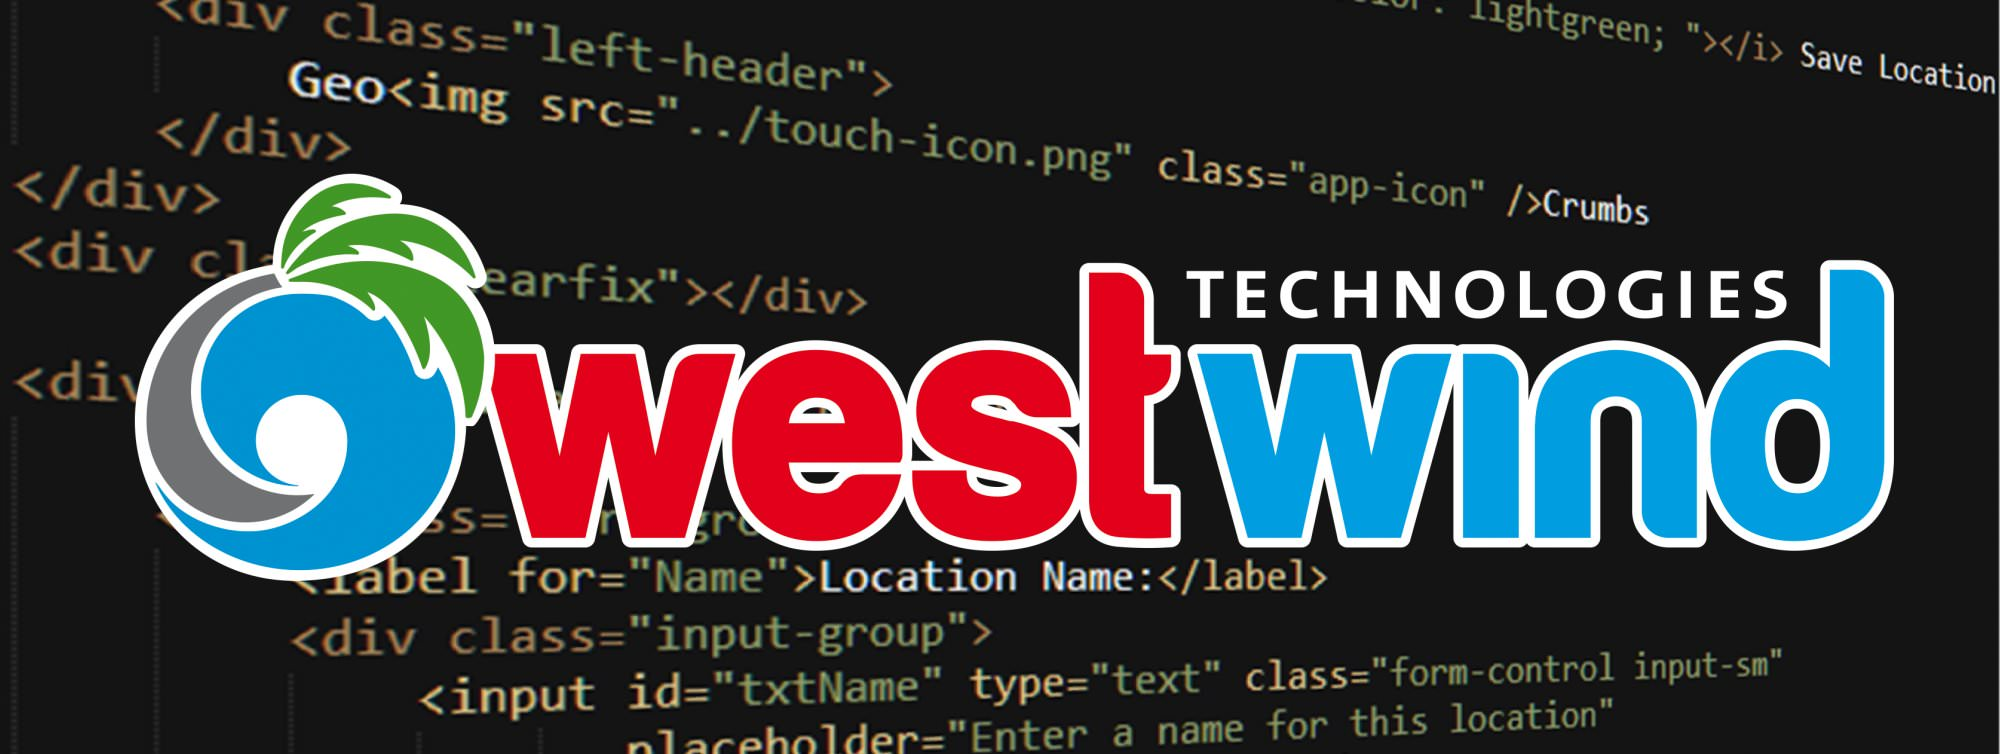 West Wind Technologies - Making Waves on the Web